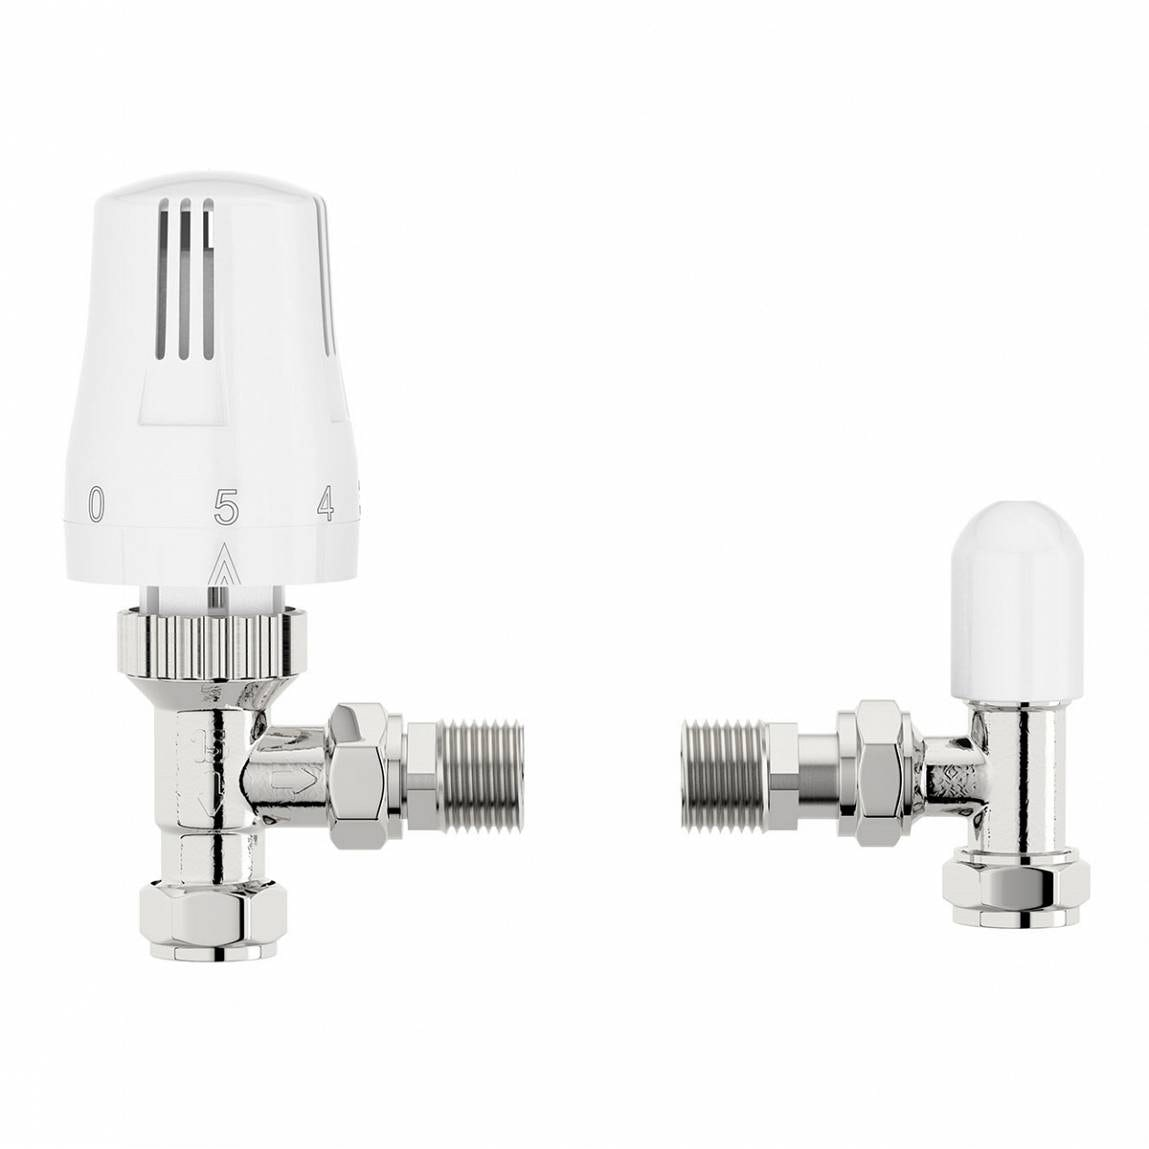 Orchard Thermostatic white angled radiator valves